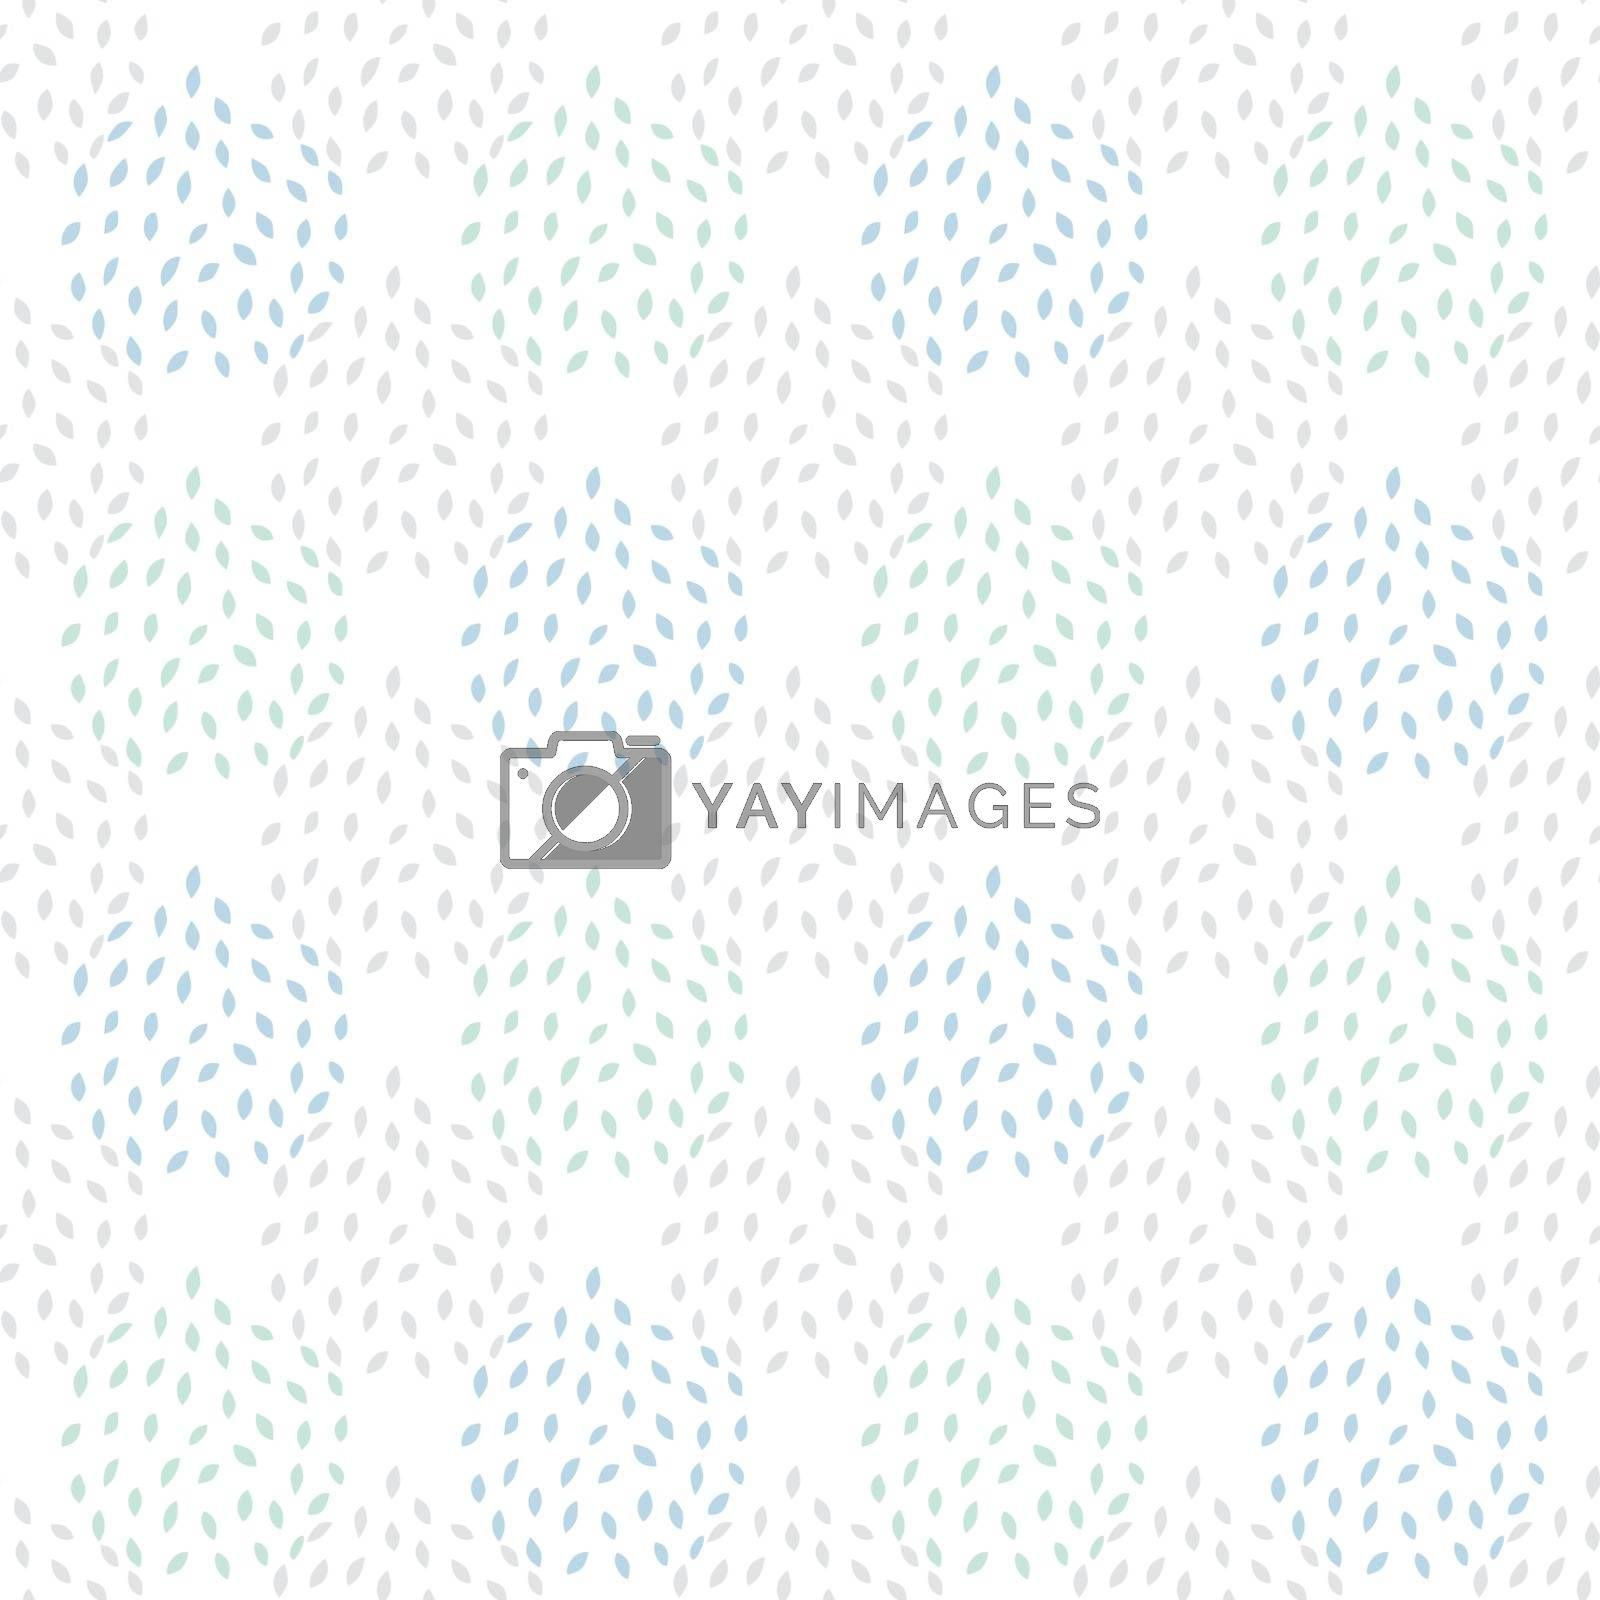 Vector Abstract Gray Leaves Texture Seamless Pattern graphic design